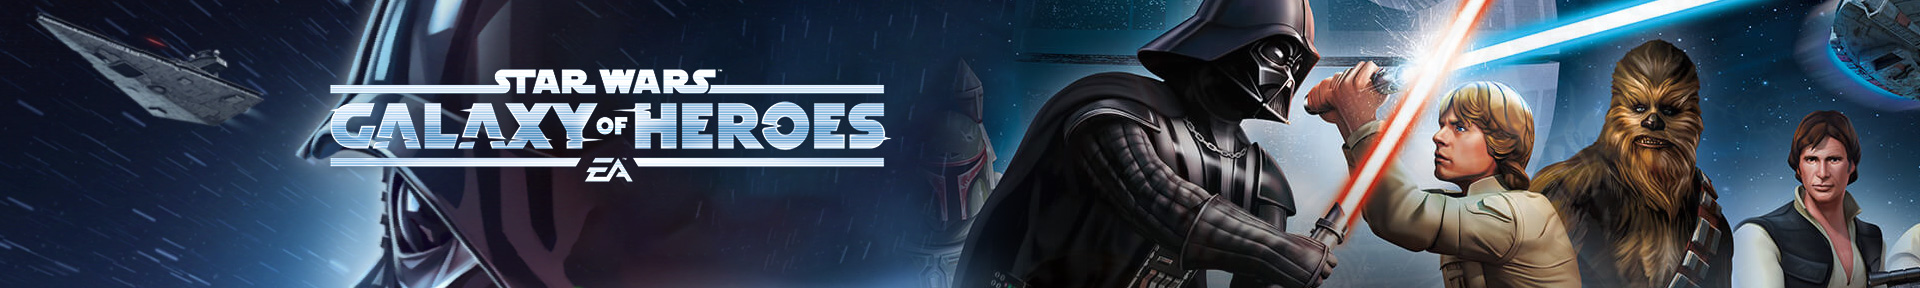 Star Wars Galaxy Of Heroes Crystals